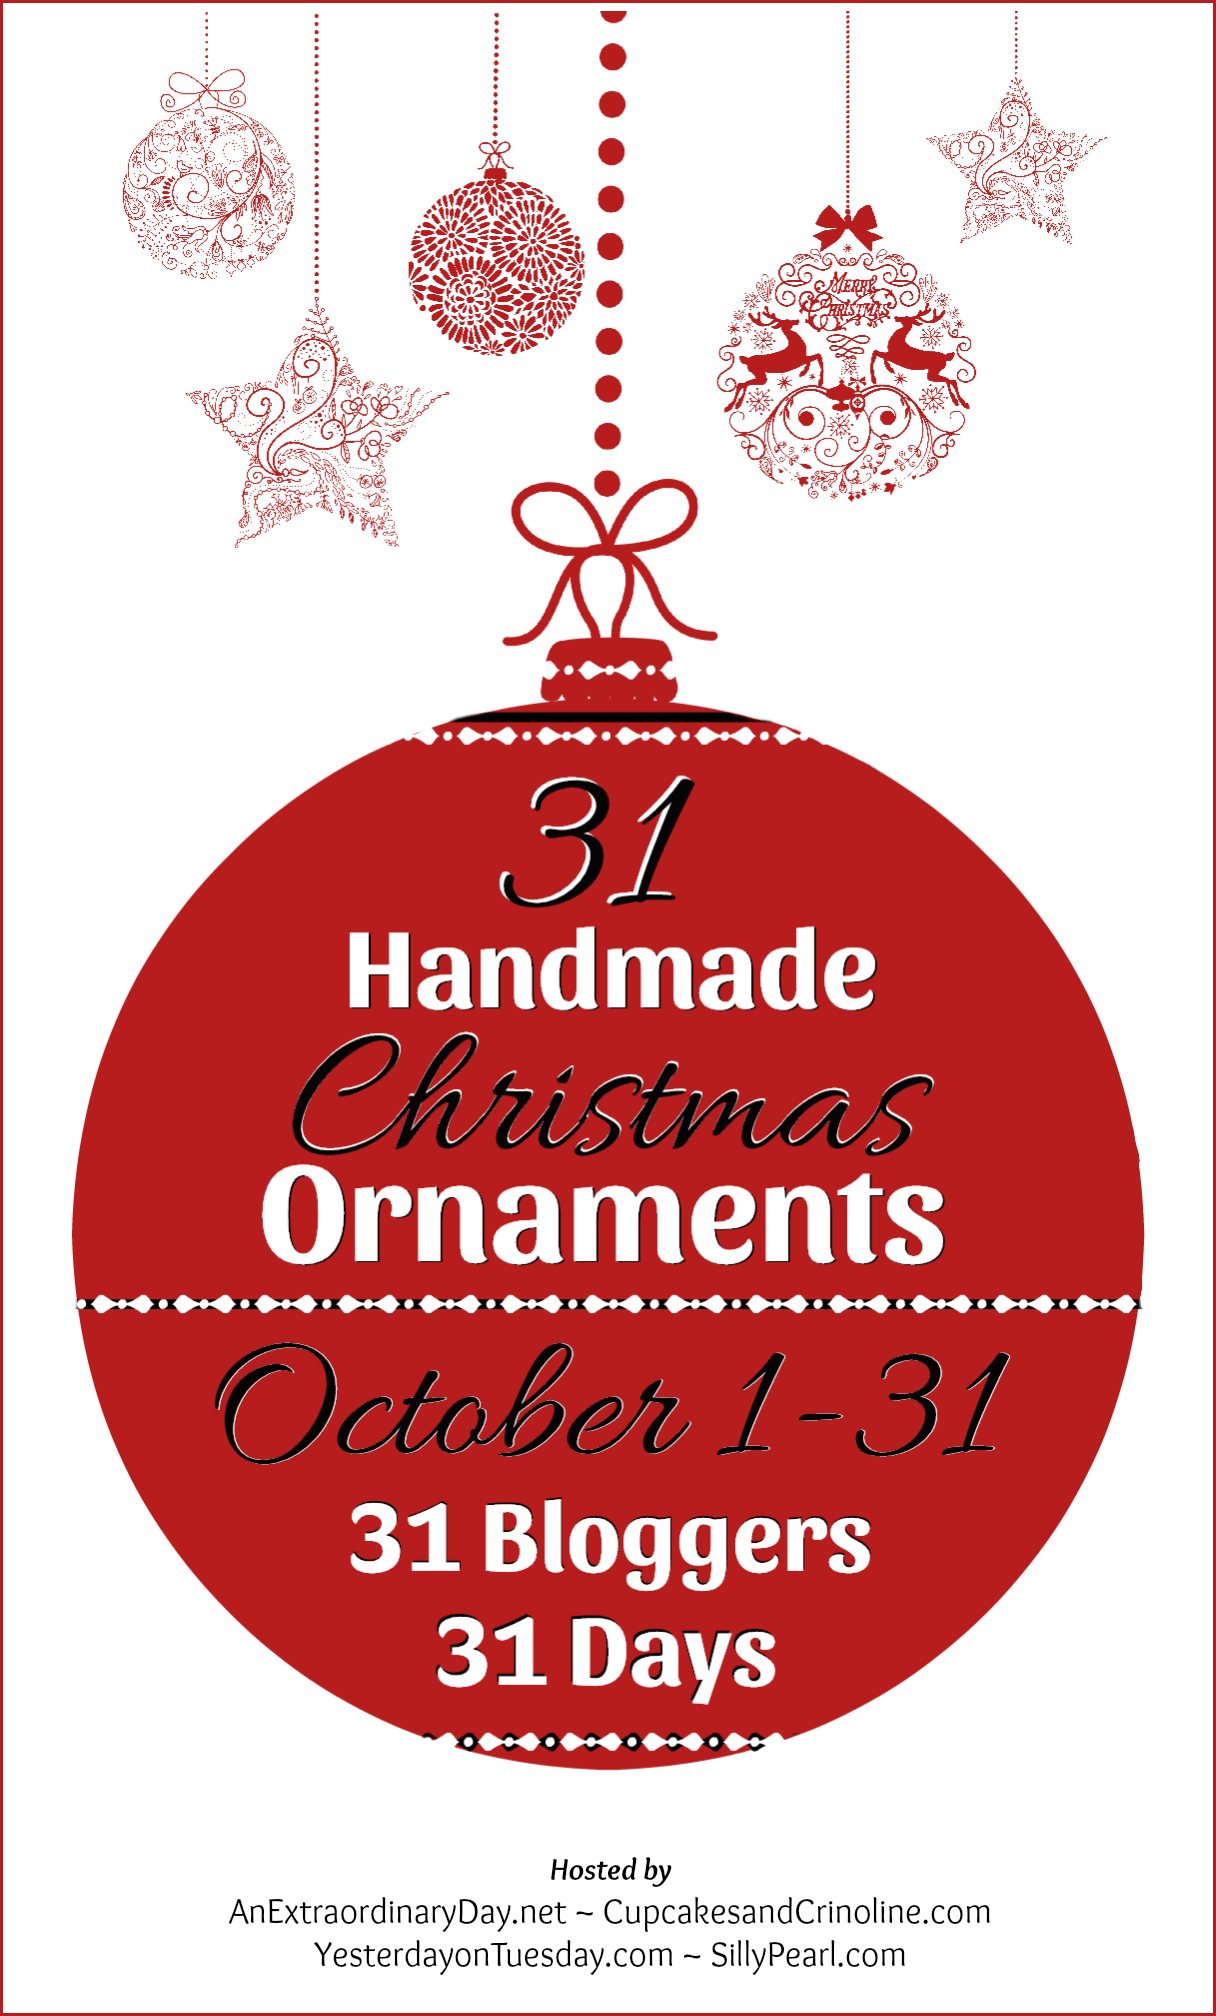 31 Bloggers - 31 Days - 31 Handmade Christmas Ornaments - Blog Hop - AnExtraordinaryDay.net